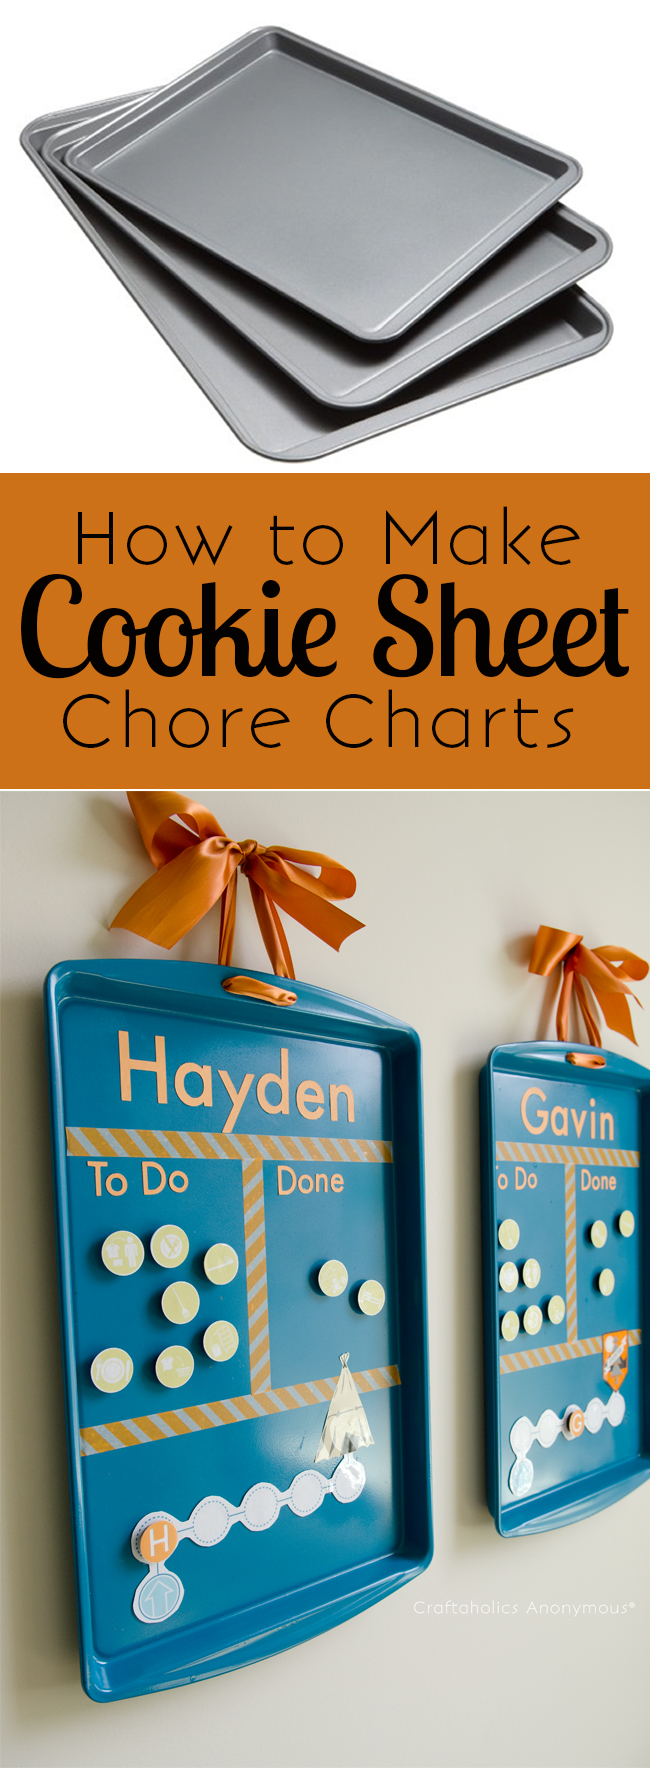 DIY cookie sheets chore charts (via www.craftaholicsanonymous.net)